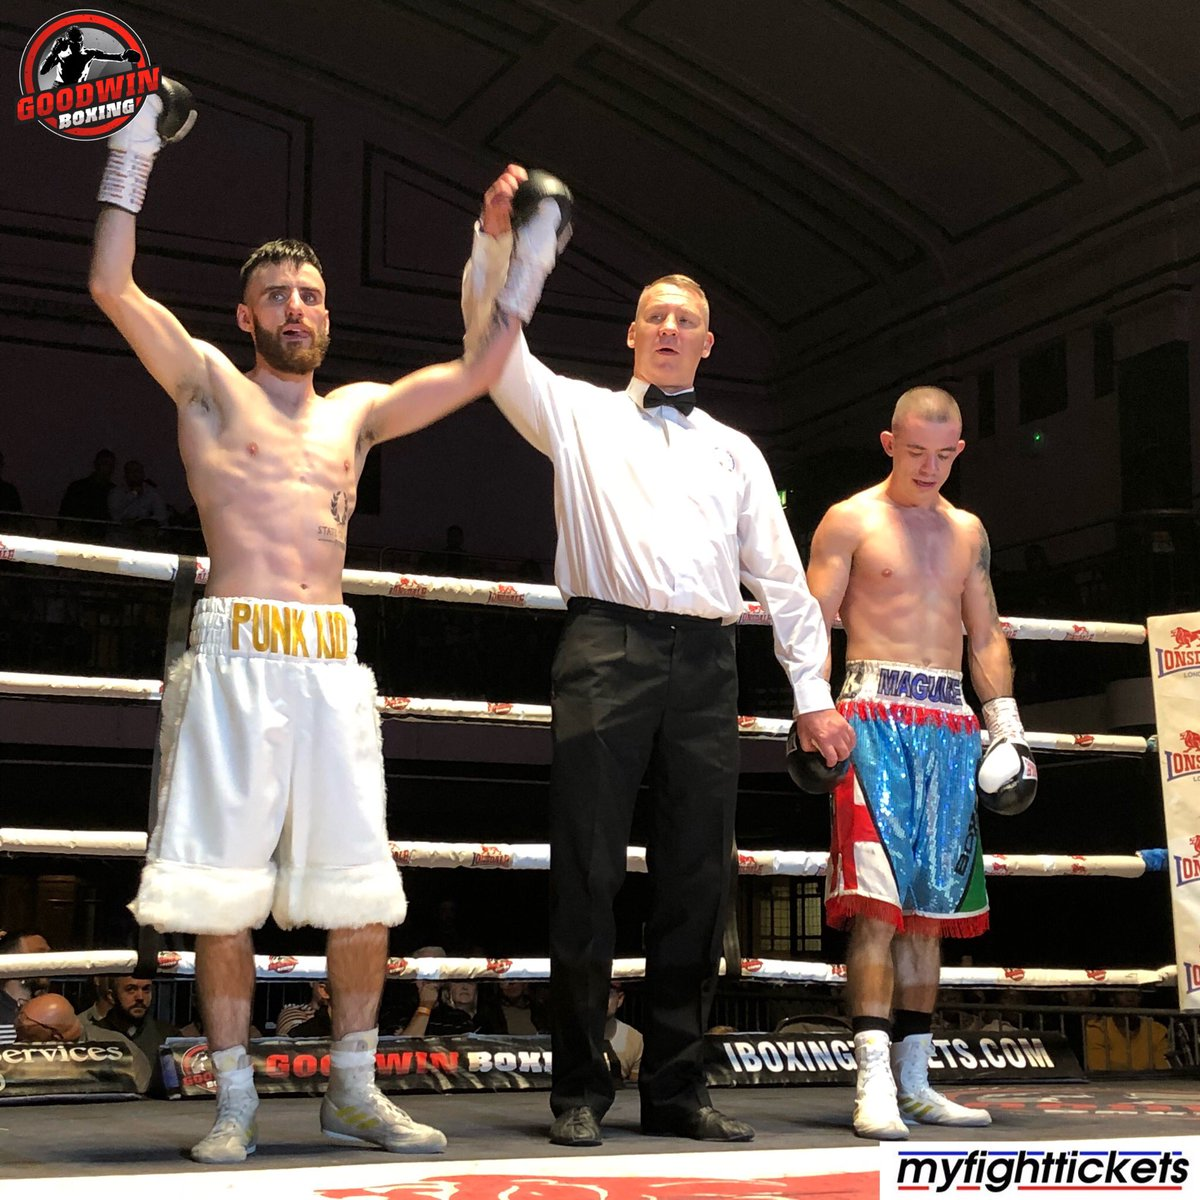 Goodwin Boxing's photo on Maguire